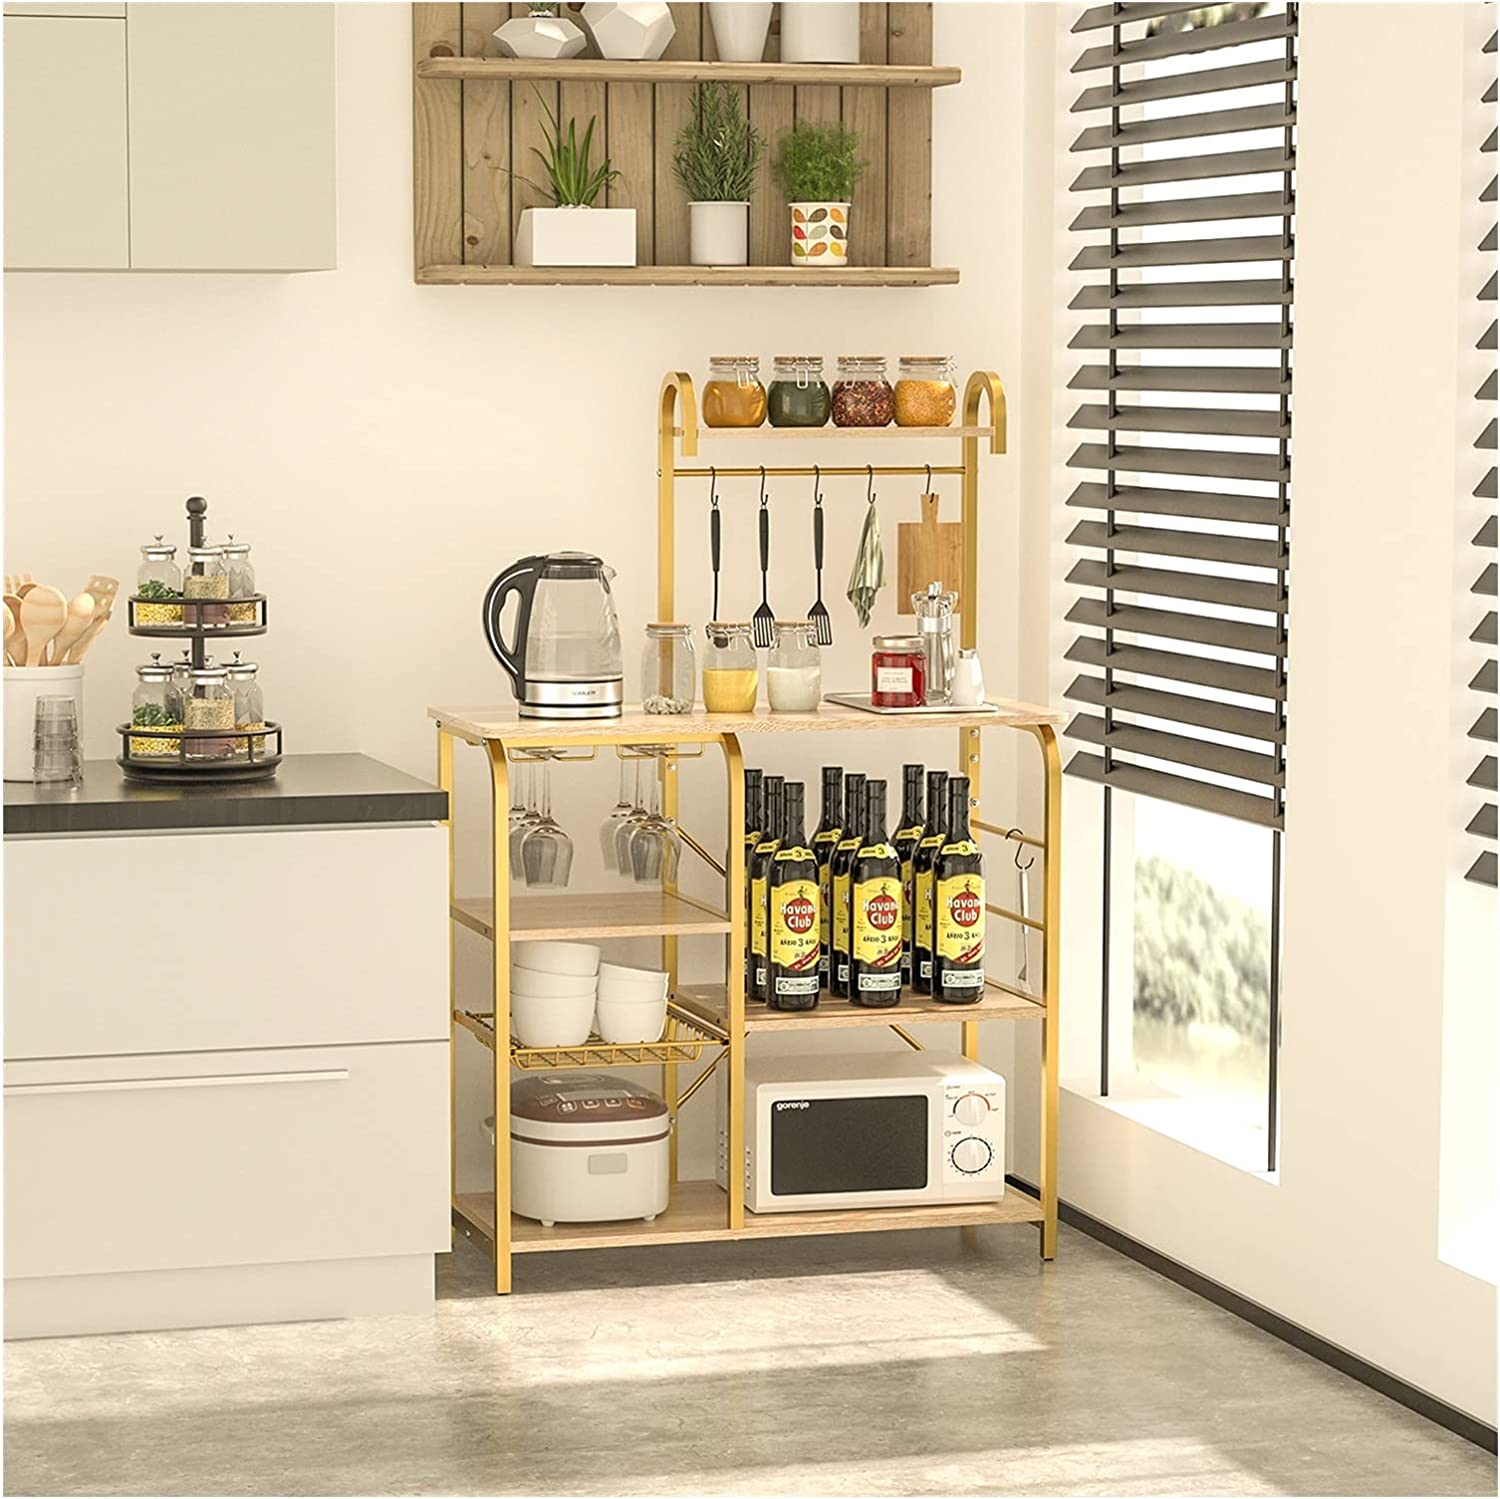 WHNB Kitchen Shelf Microwave Rack with Board Particle S-Shaped 6 Popular brand Large discharge sale